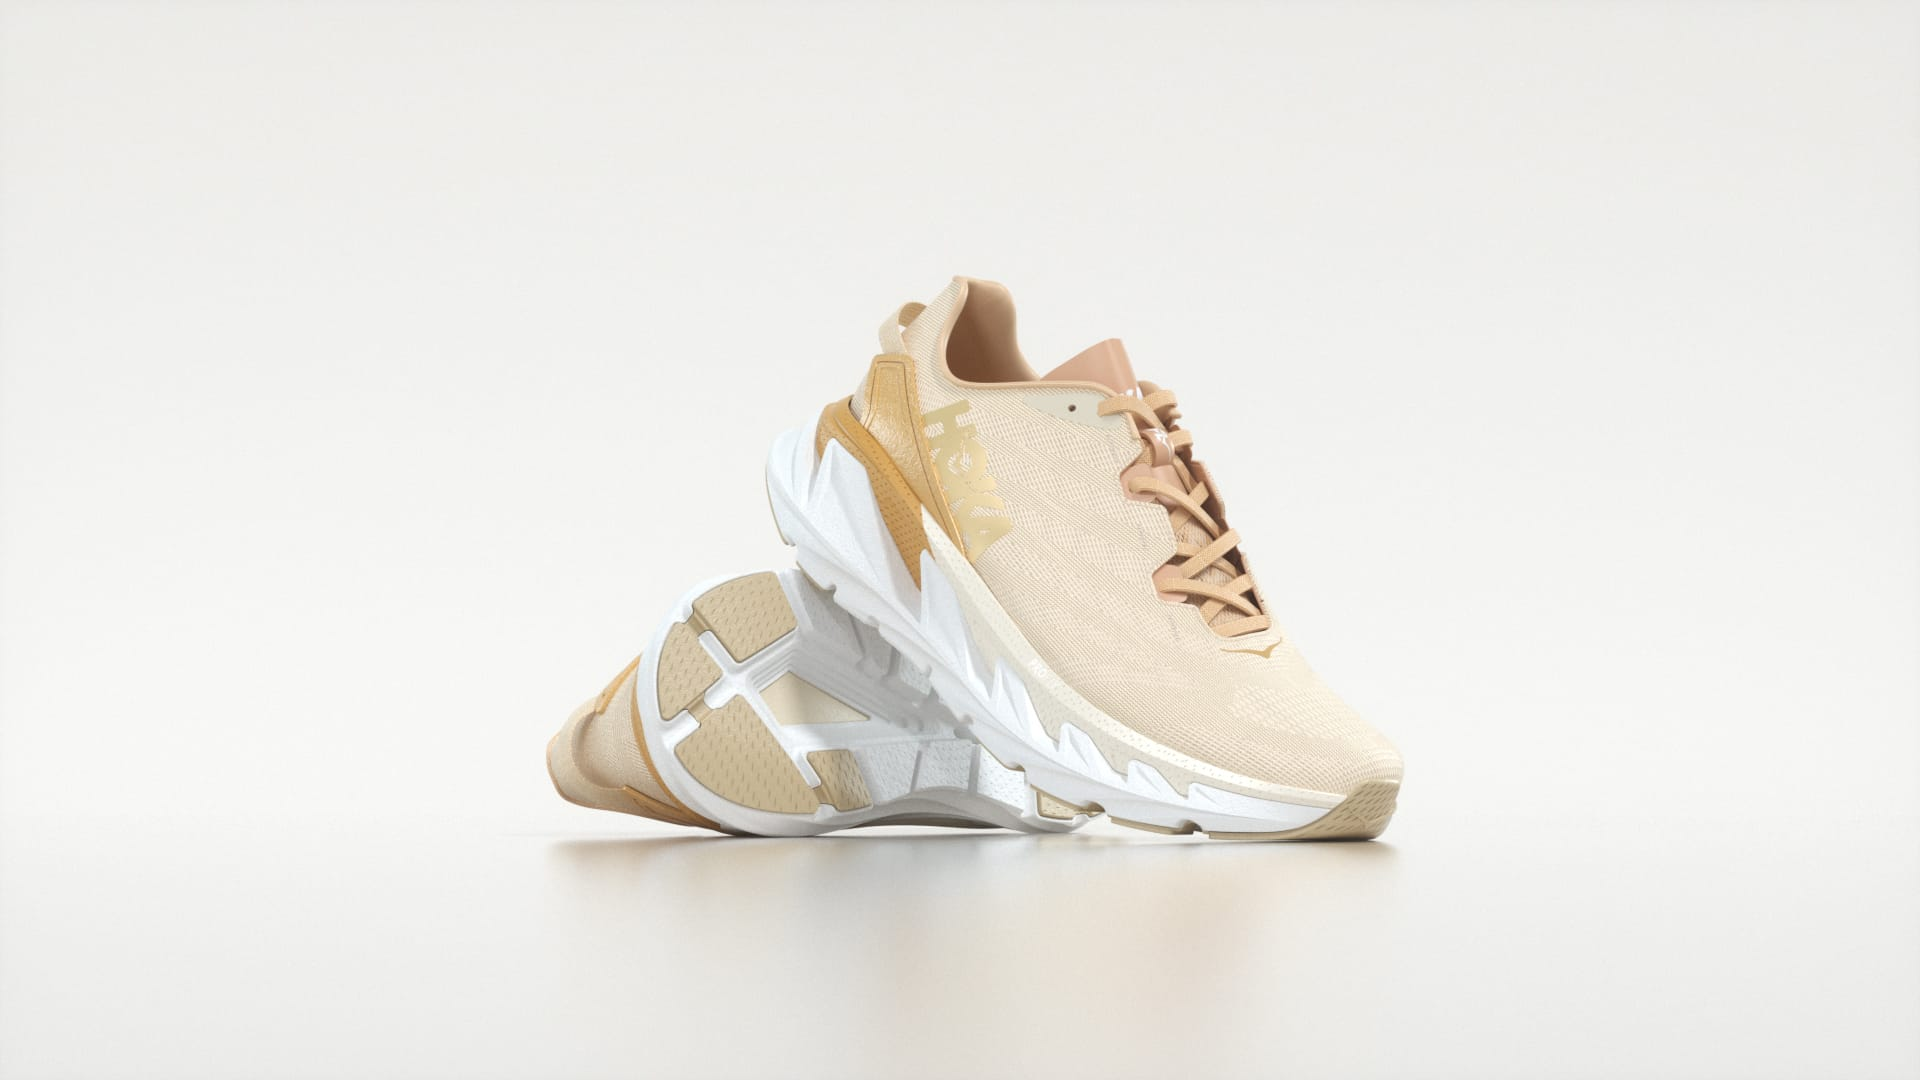 hoka-one-one-elevon-2-edition-gold-running-runpack